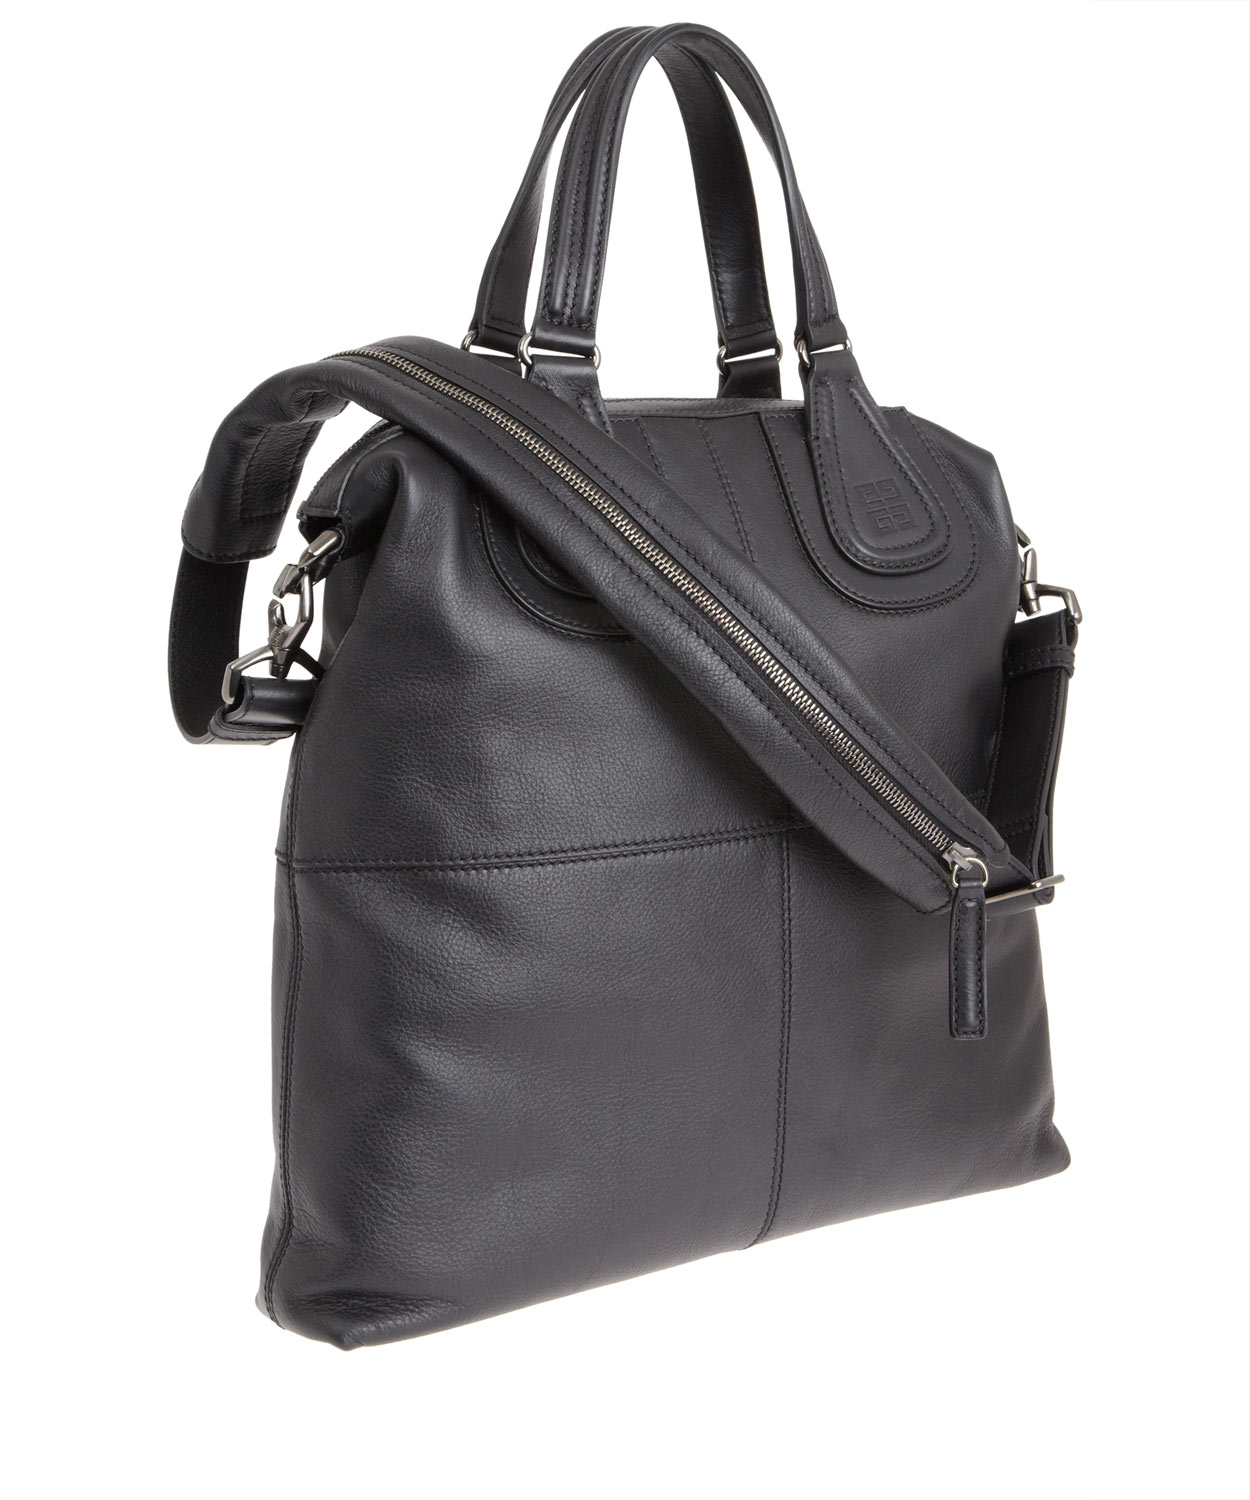 Lyst - Givenchy Black Nightingale Leather Tote Bag in Black for Men 3b85a0d88df90